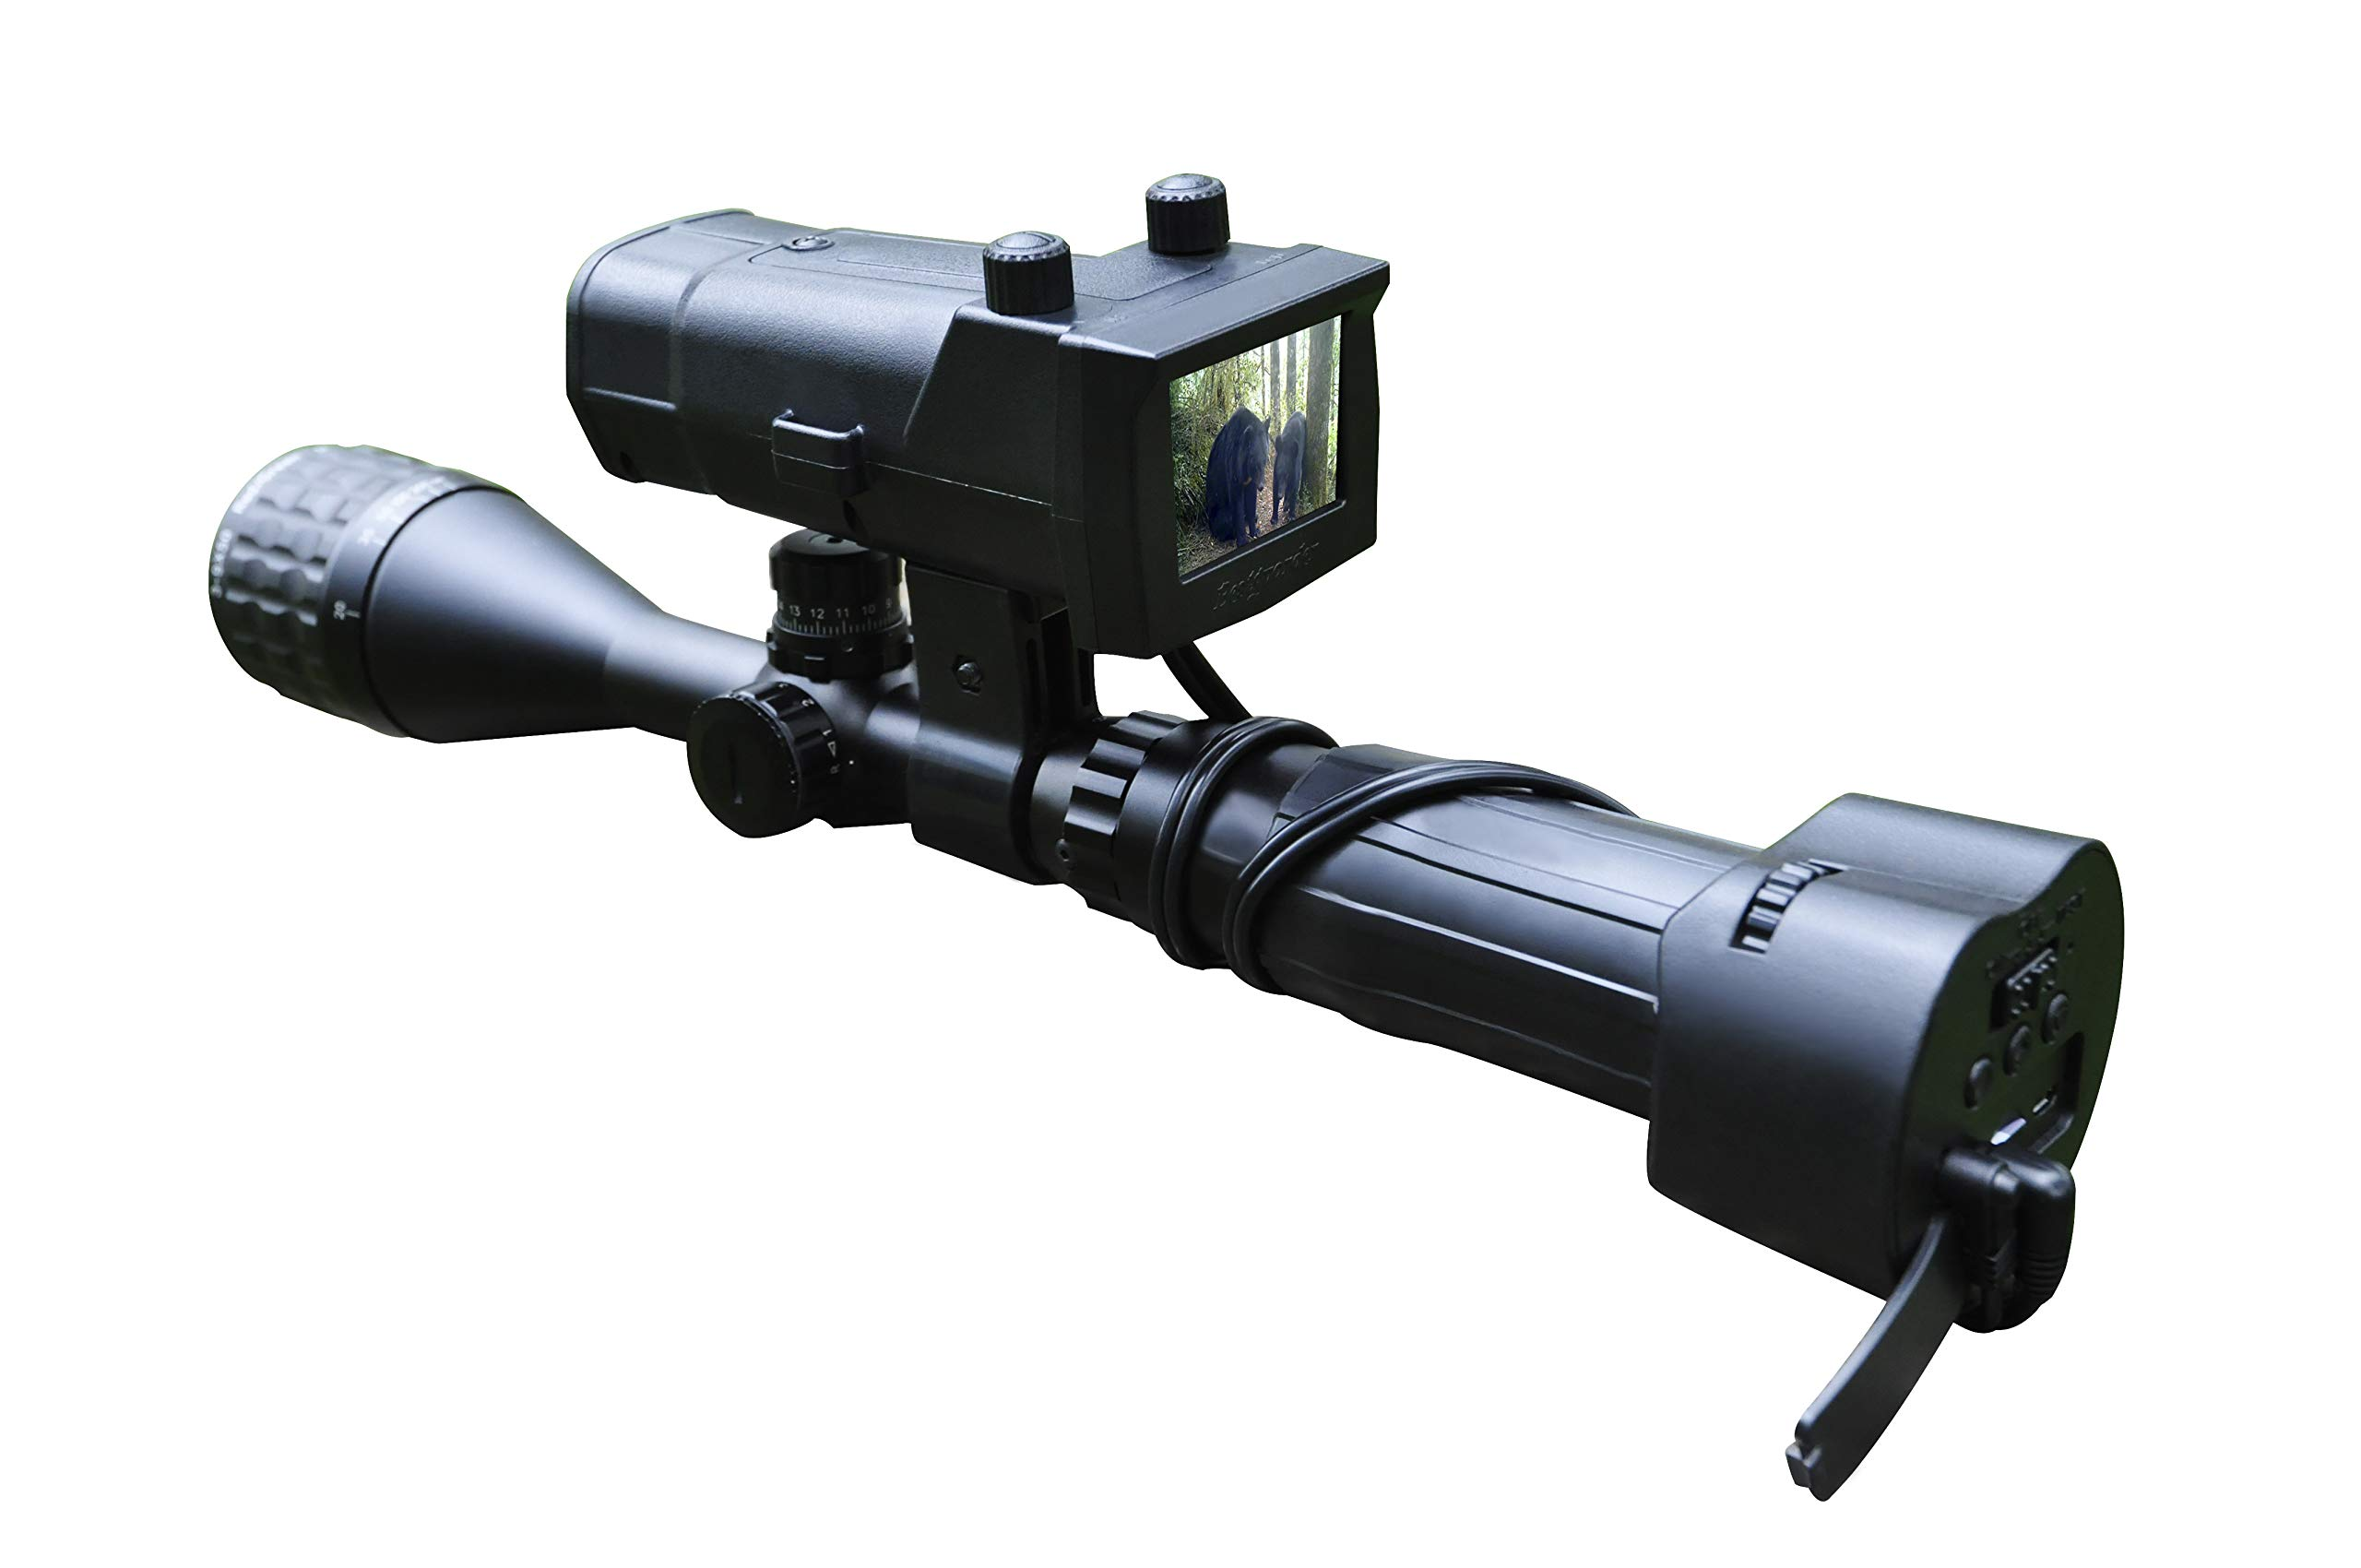 "DOJOYNIGHT 300M / 1000ft / 320 Yards Identification Range Scope Mounted 940NM Infrared Digital Night Vision Systems Recording Photo or Video for Night Hunting with WiFi Function and 4.3"" LCD Screen by DOJOYNIGHT (Image #1)"